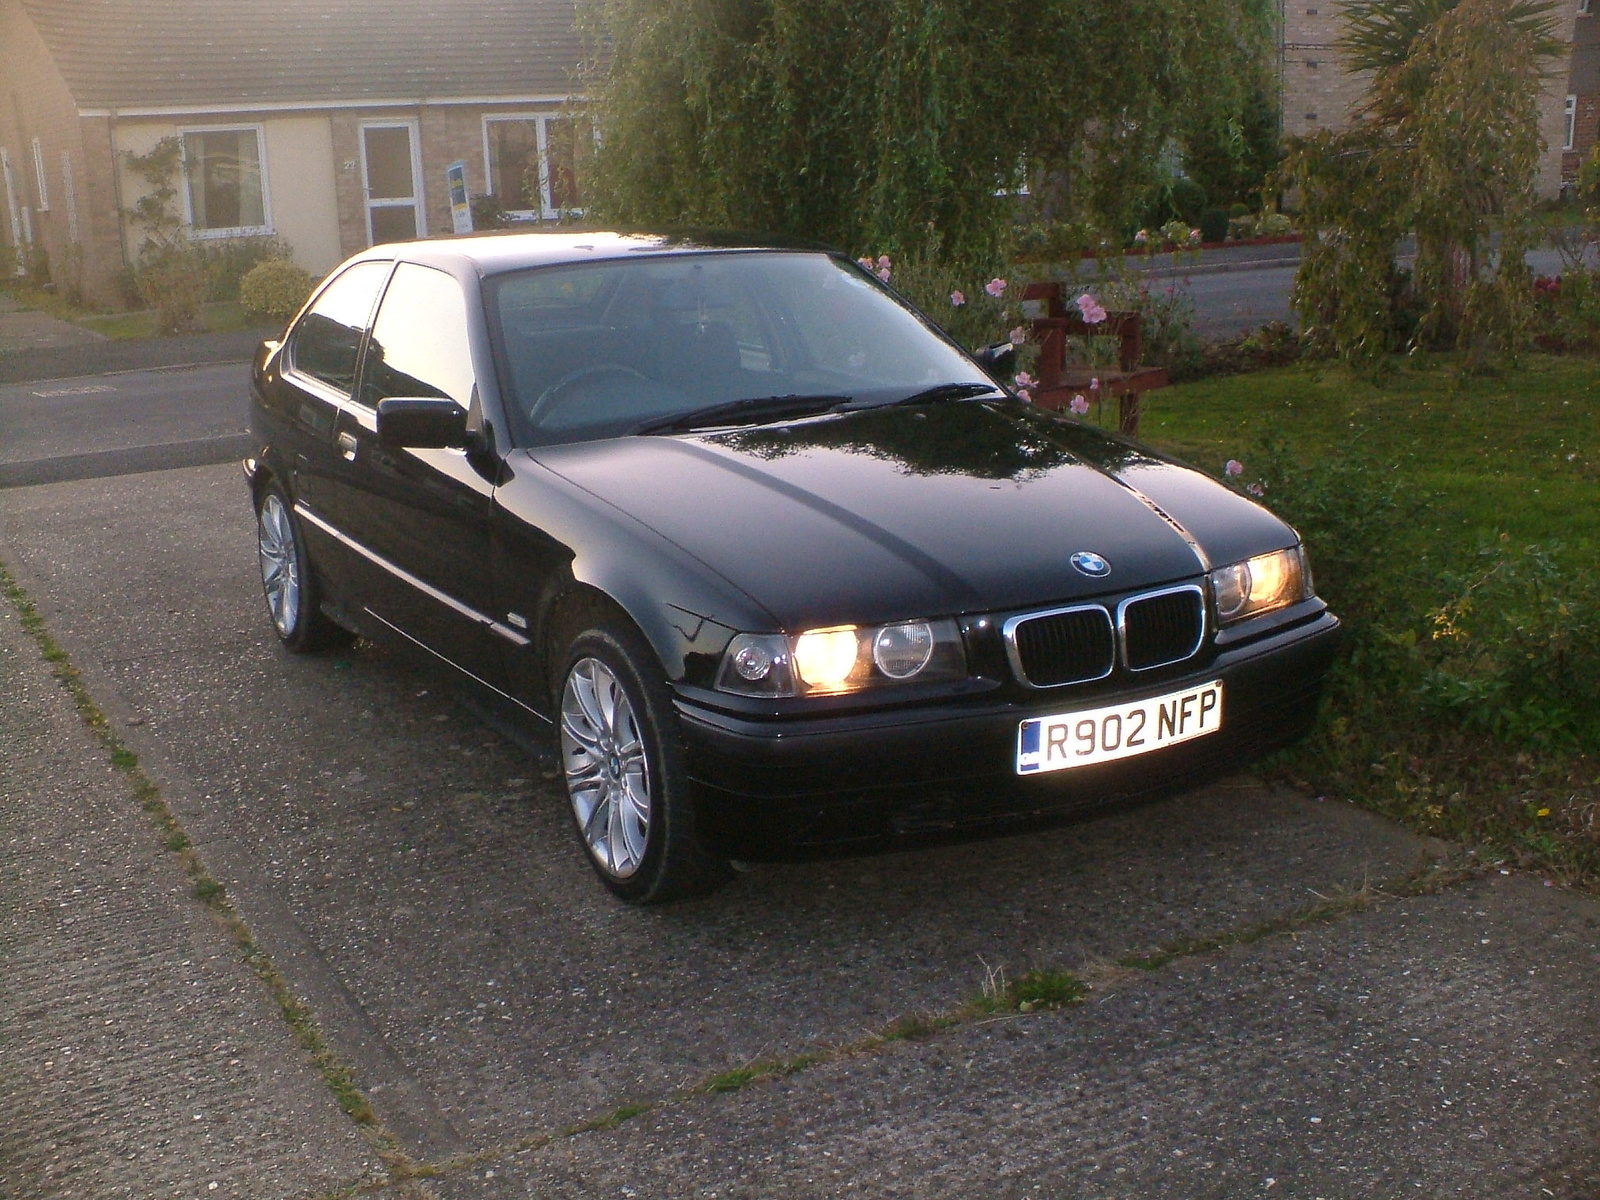 BMW 316 2001: Review, Amazing Pictures and Images – Look at the car